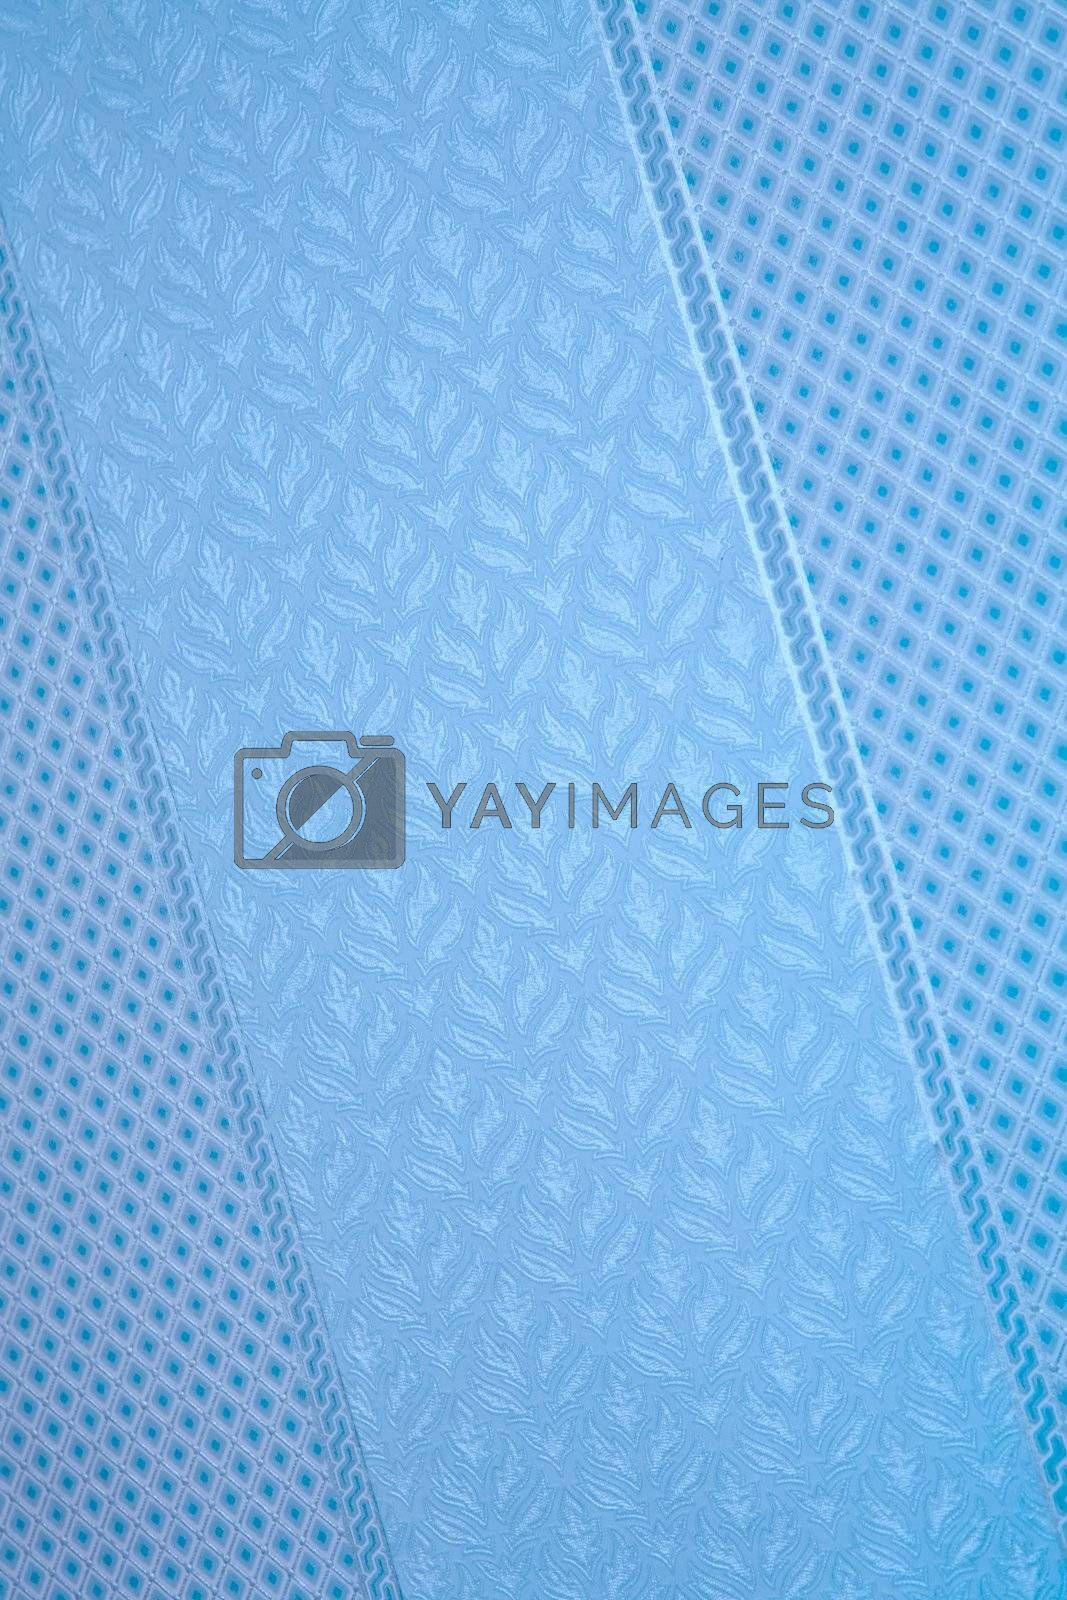 Royalty free image of drawing on blue surface by Astroid